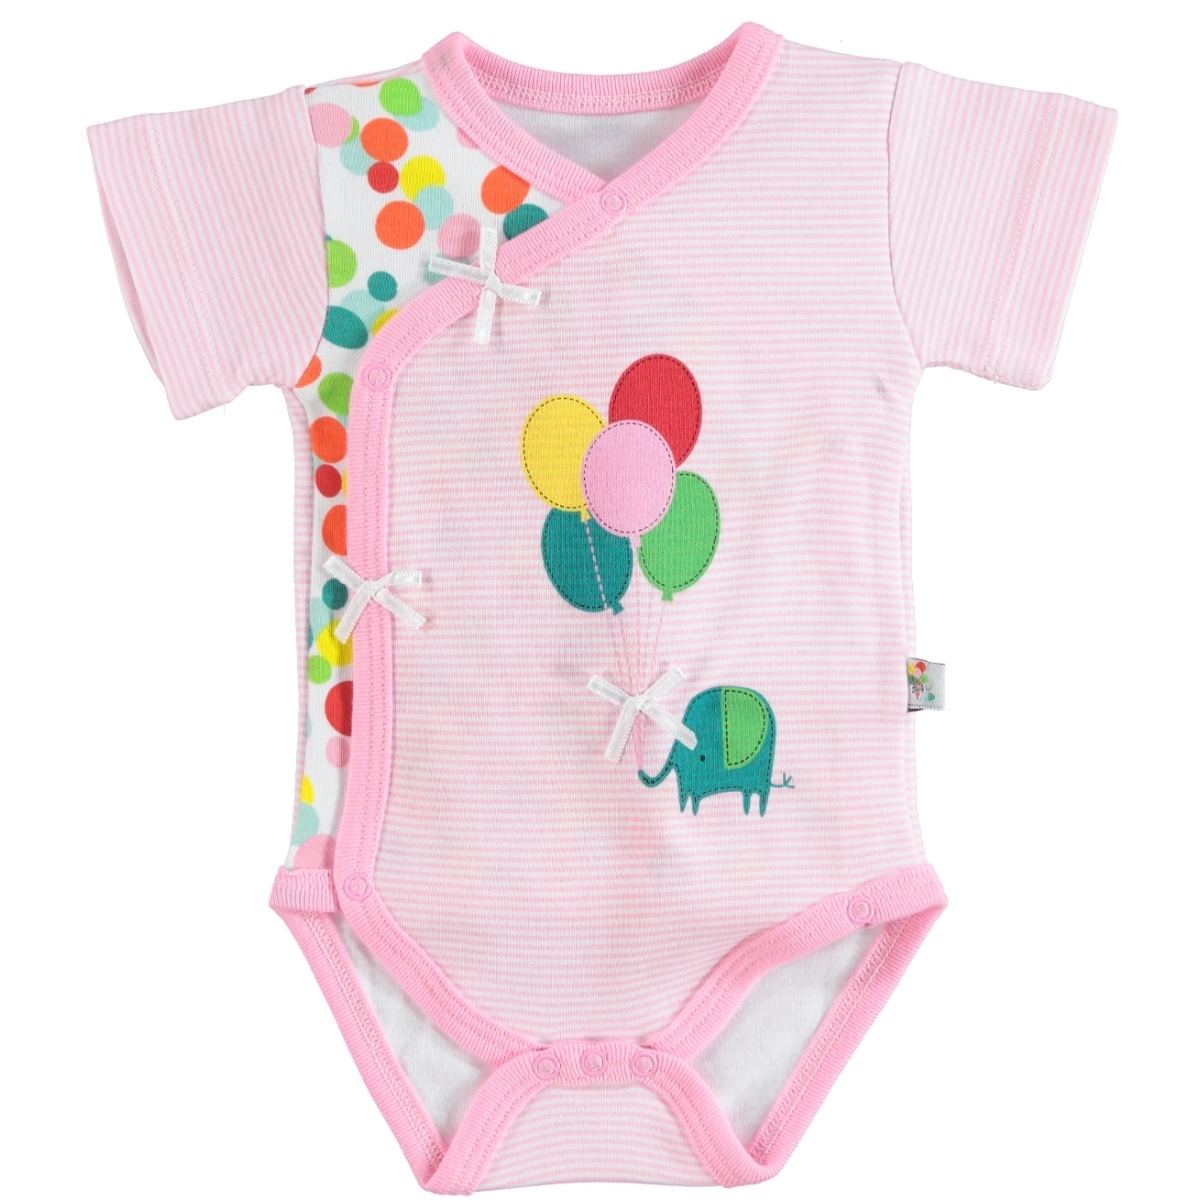 Babycool 1-6 Months Baby Girl Pink Bodysuit With Snaps